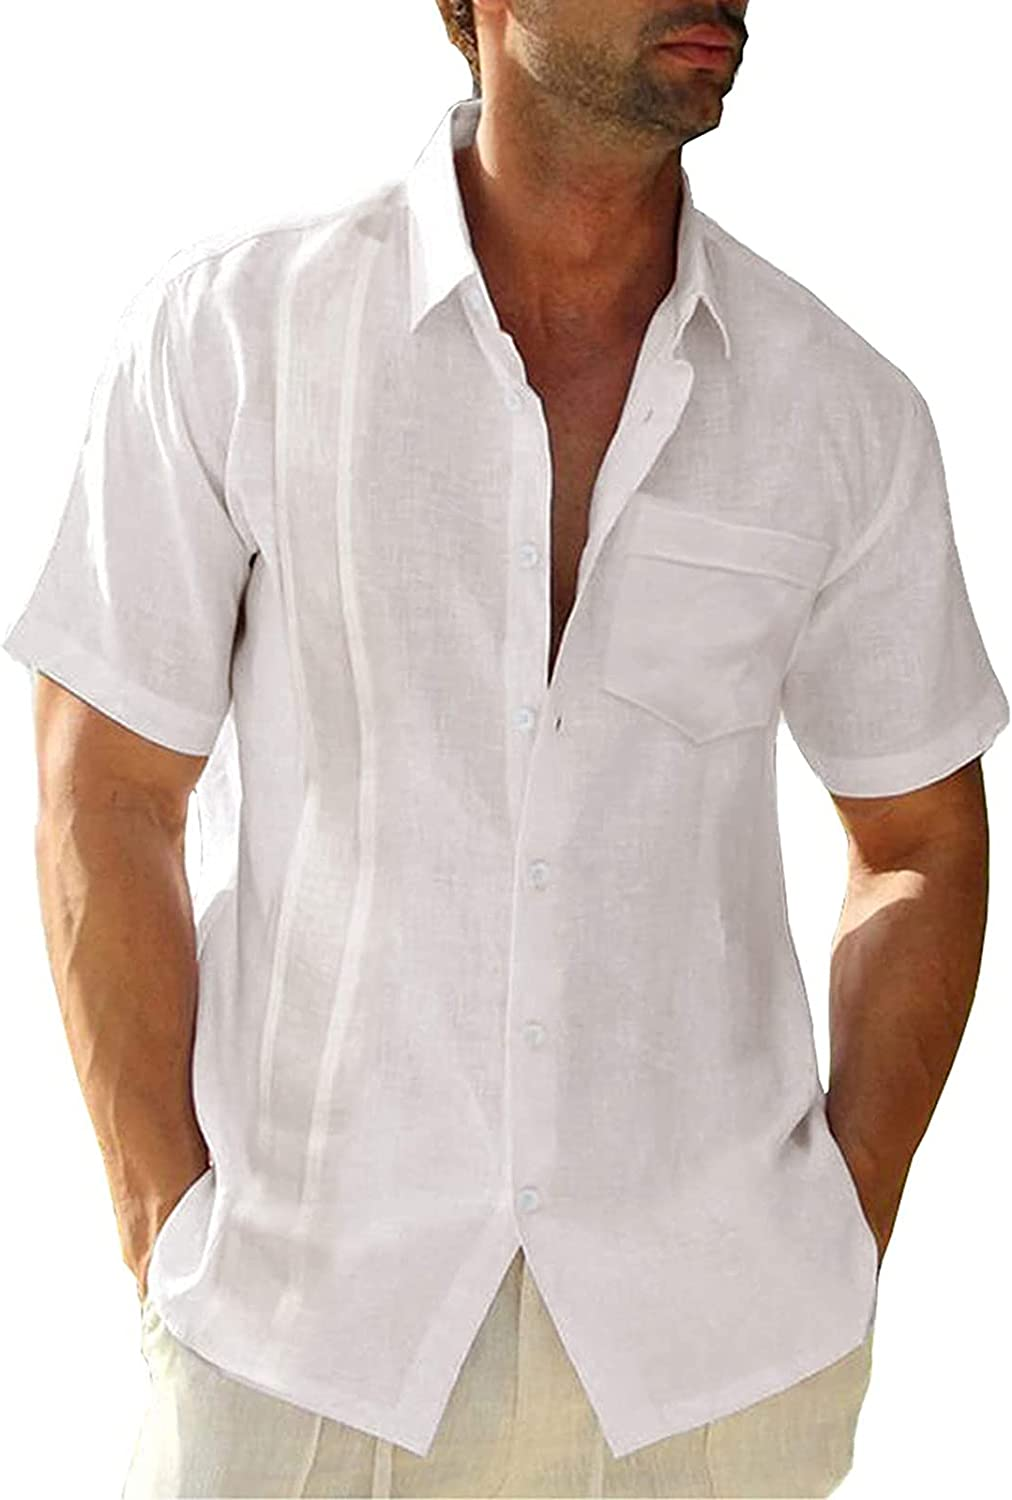 WOCACHI Cotton Linen Button Down Shirts for Mens , Summer Short Sleeve Casual Tee Tops Shirt with Front Pockets